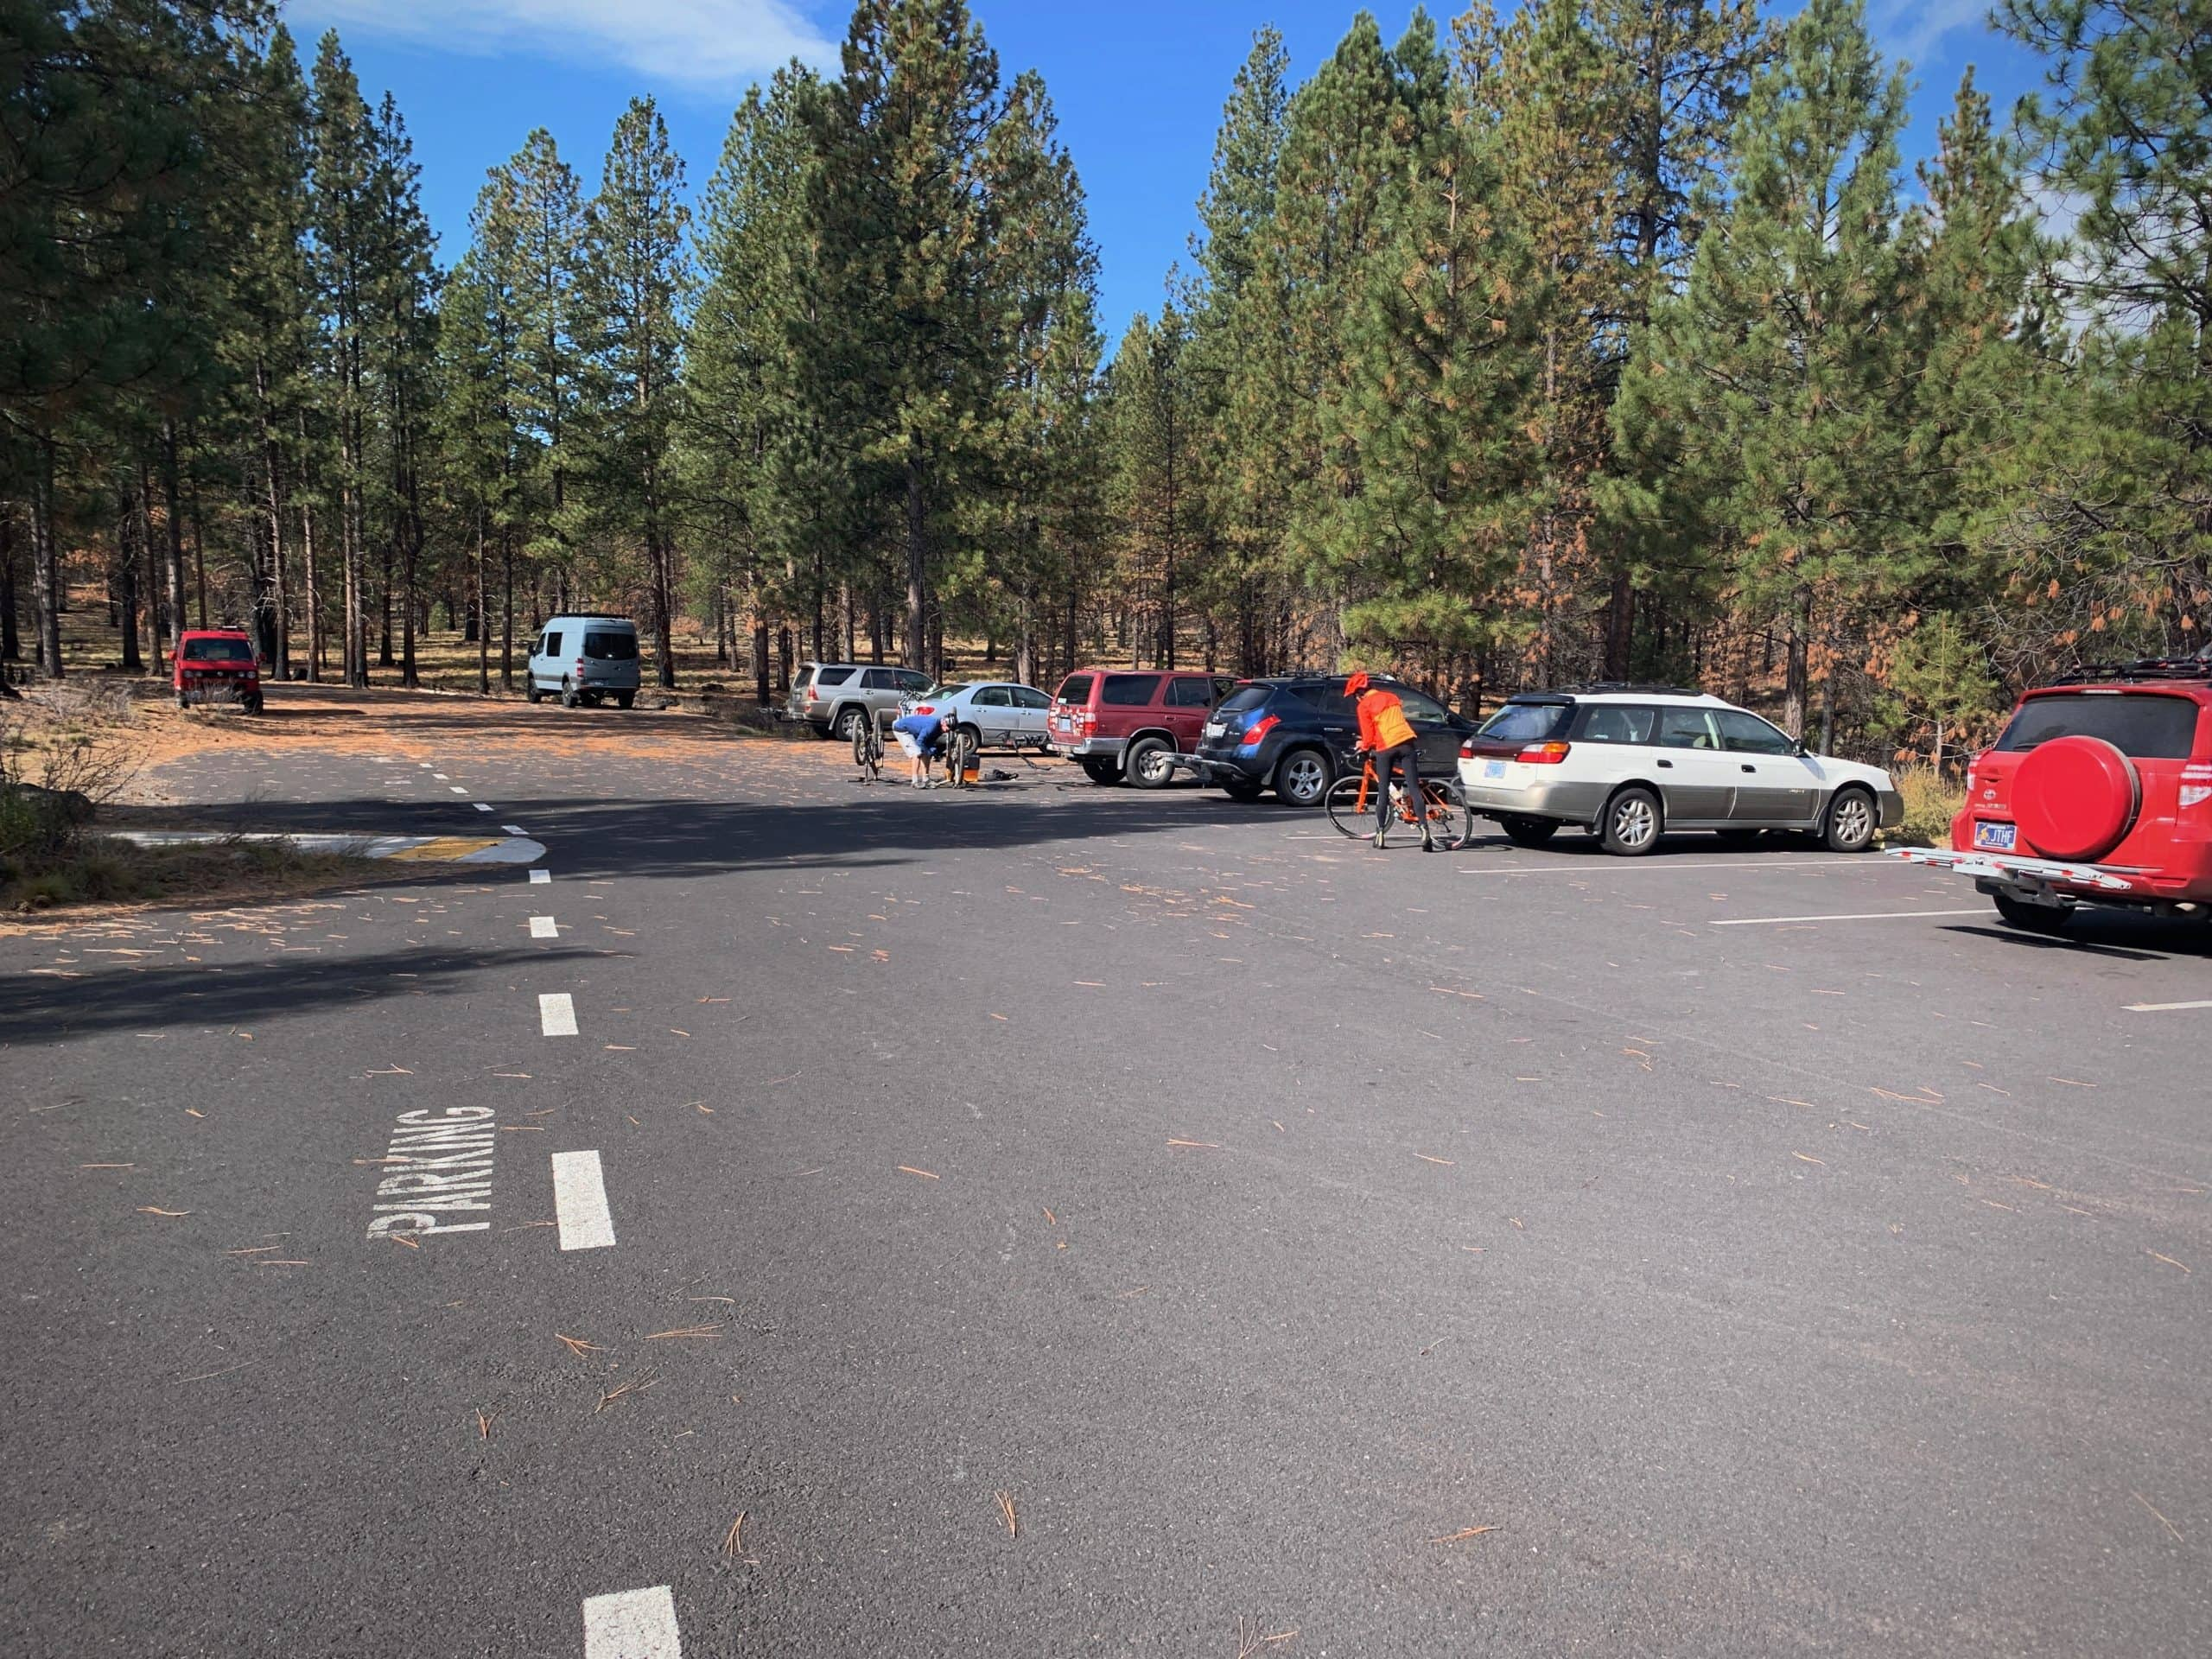 The parking lot at the Cascade Lakes Visitor center in Deschutes National Forest near Bend, Oregon.